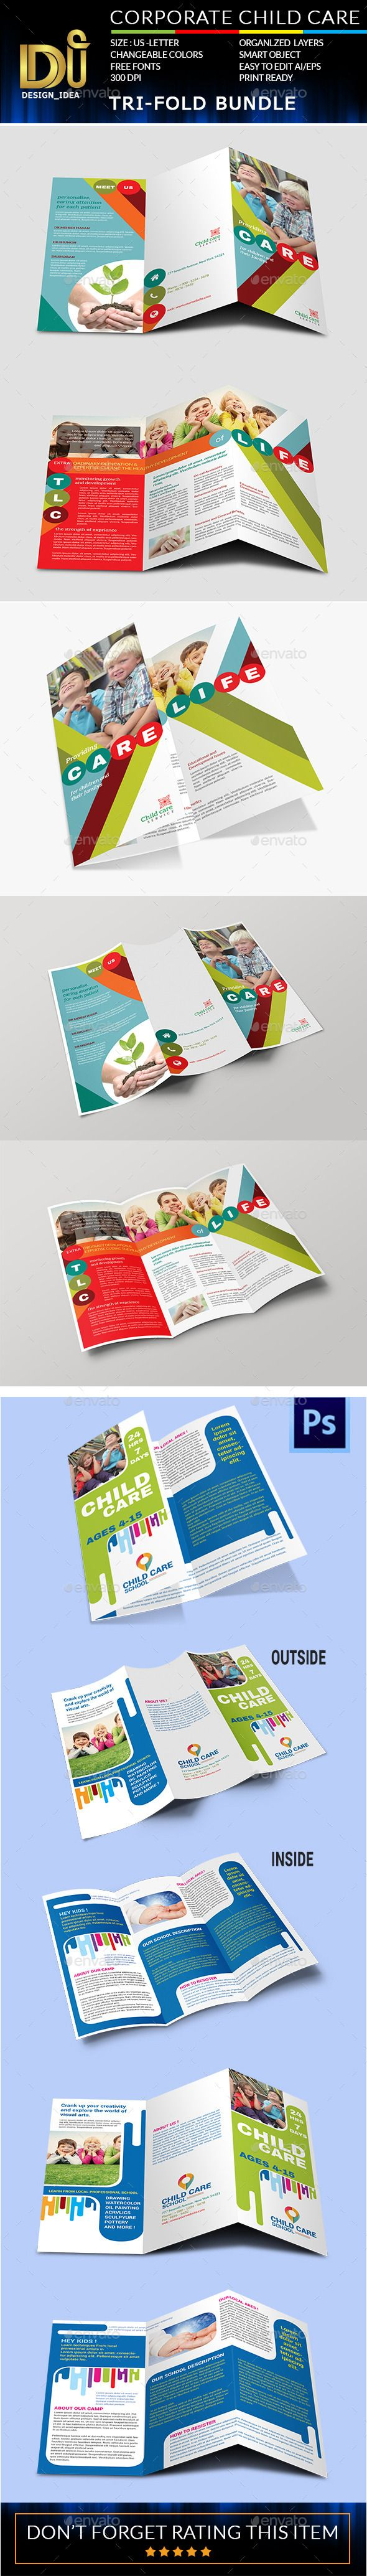 Child care tri fold brochure bundle template design for Child care brochure template free